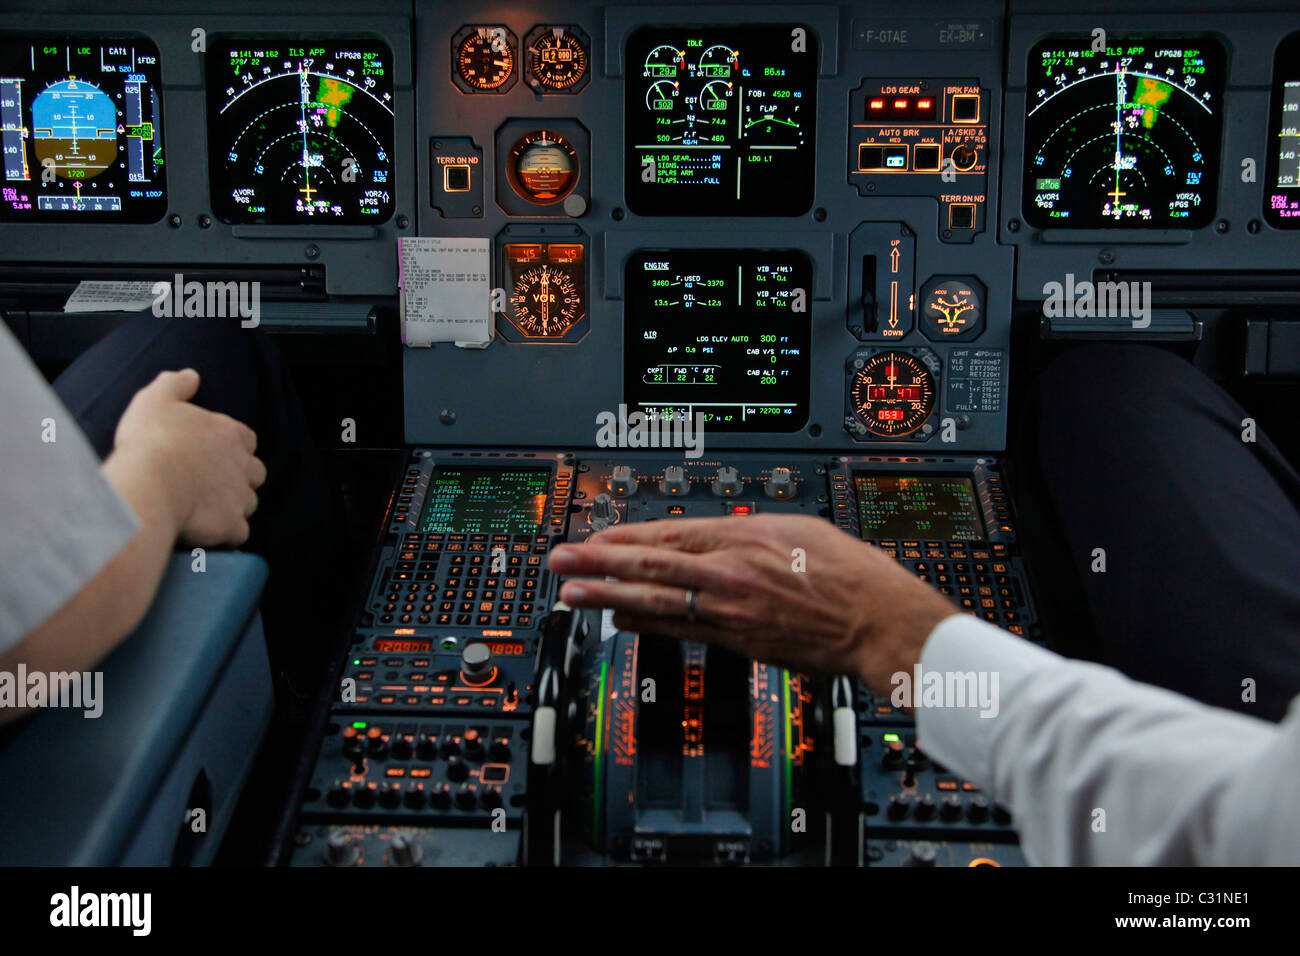 Instrument Panel Cockpit Of An Airbus A320 On A Paris